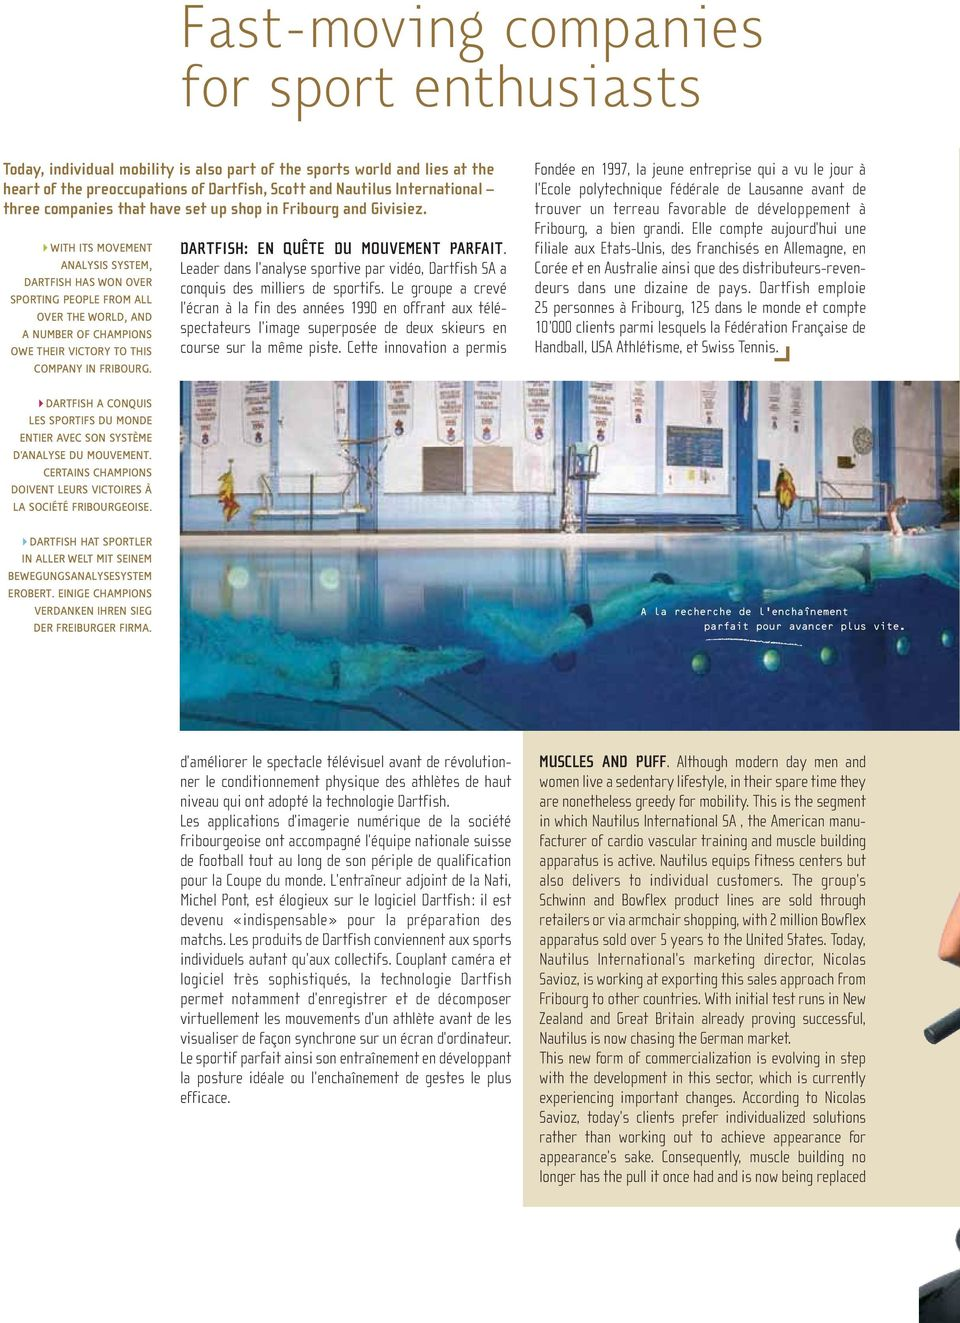 WITH ITS MOVEMENT ANALYSIS SYSTEM, DARTFISH HAS WON OVER SPORTING PEOPLE FROM ALL OVER THE WORLD, AND A NUMBER OF CHAMPIONS OWE THEIR VICTORY TO THIS COMPANY IN FRIBOURG.